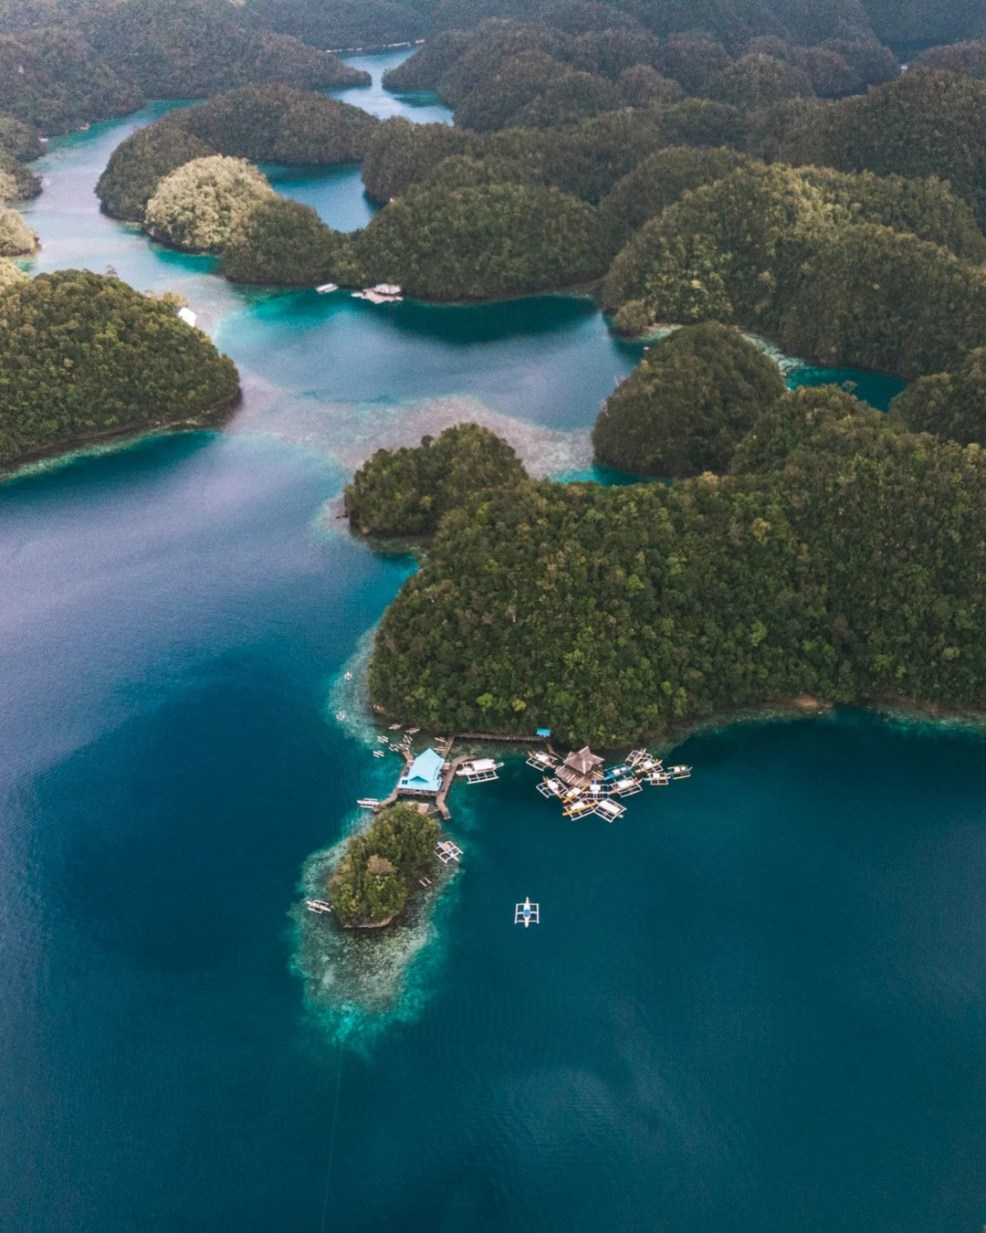 Philippines islands, Sohoton Natural Park, Bucas Grande